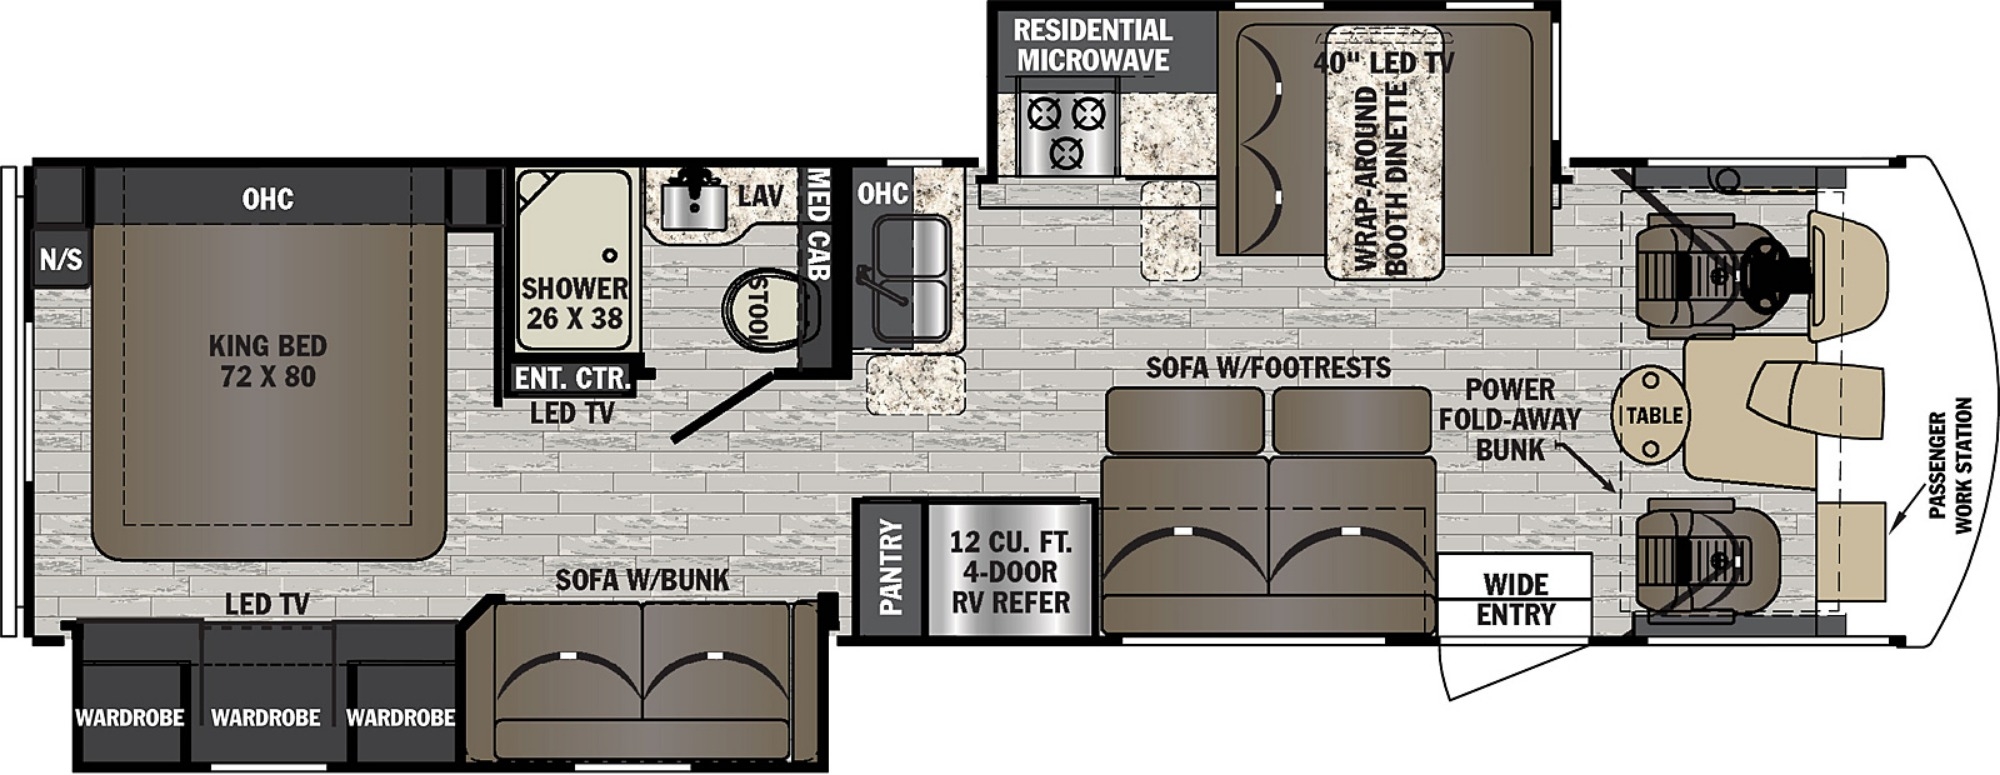 View Floor Plan for 2020 FOREST RIVER FR3 32DS